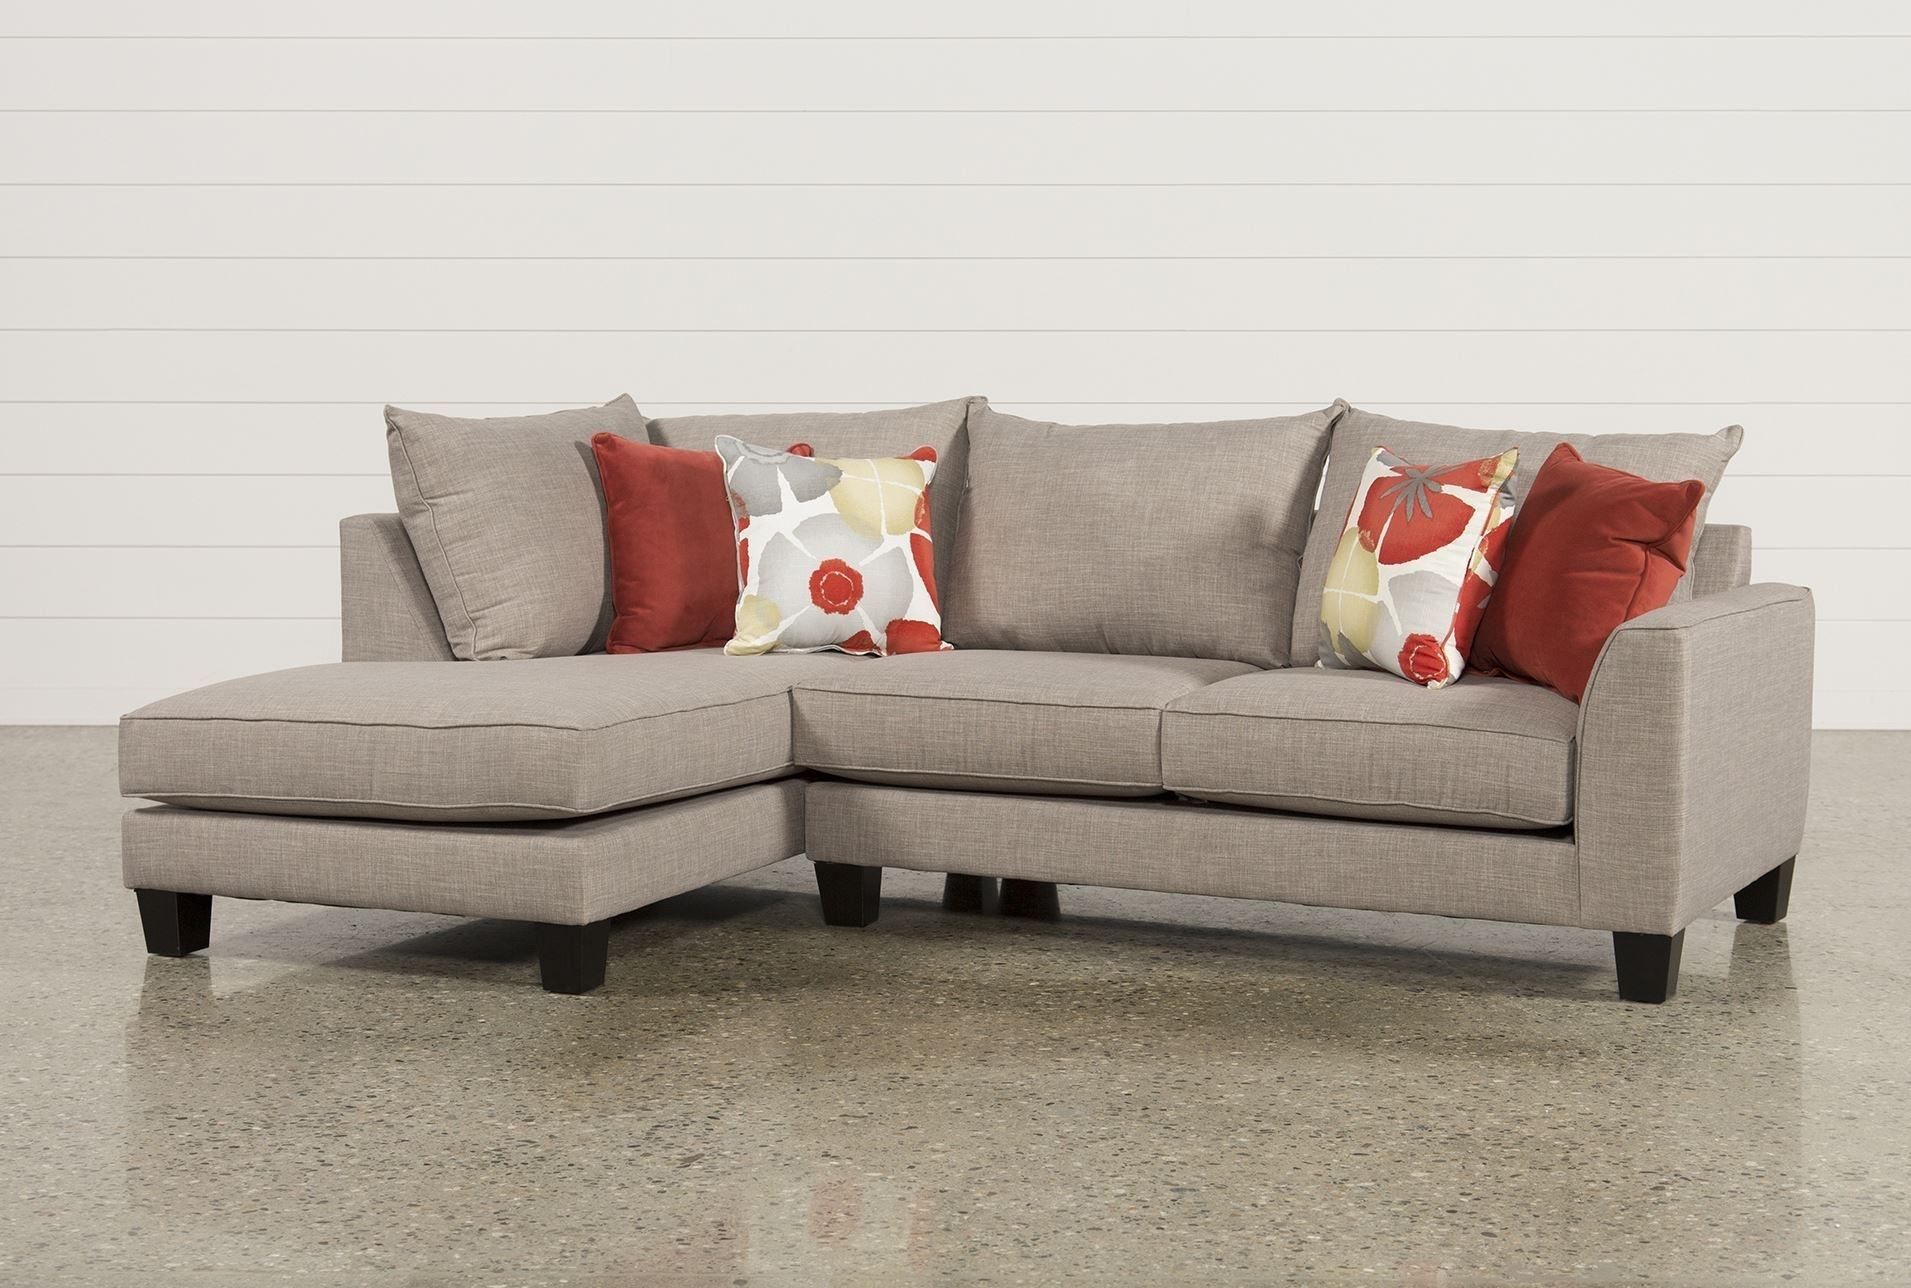 Bunch Ideas Of 2 Piece Chaise Sectional With Additional Kira 2 Piece Inside Delano 2 Piece Sectionals With Laf Oversized Chaise (Image 4 of 25)